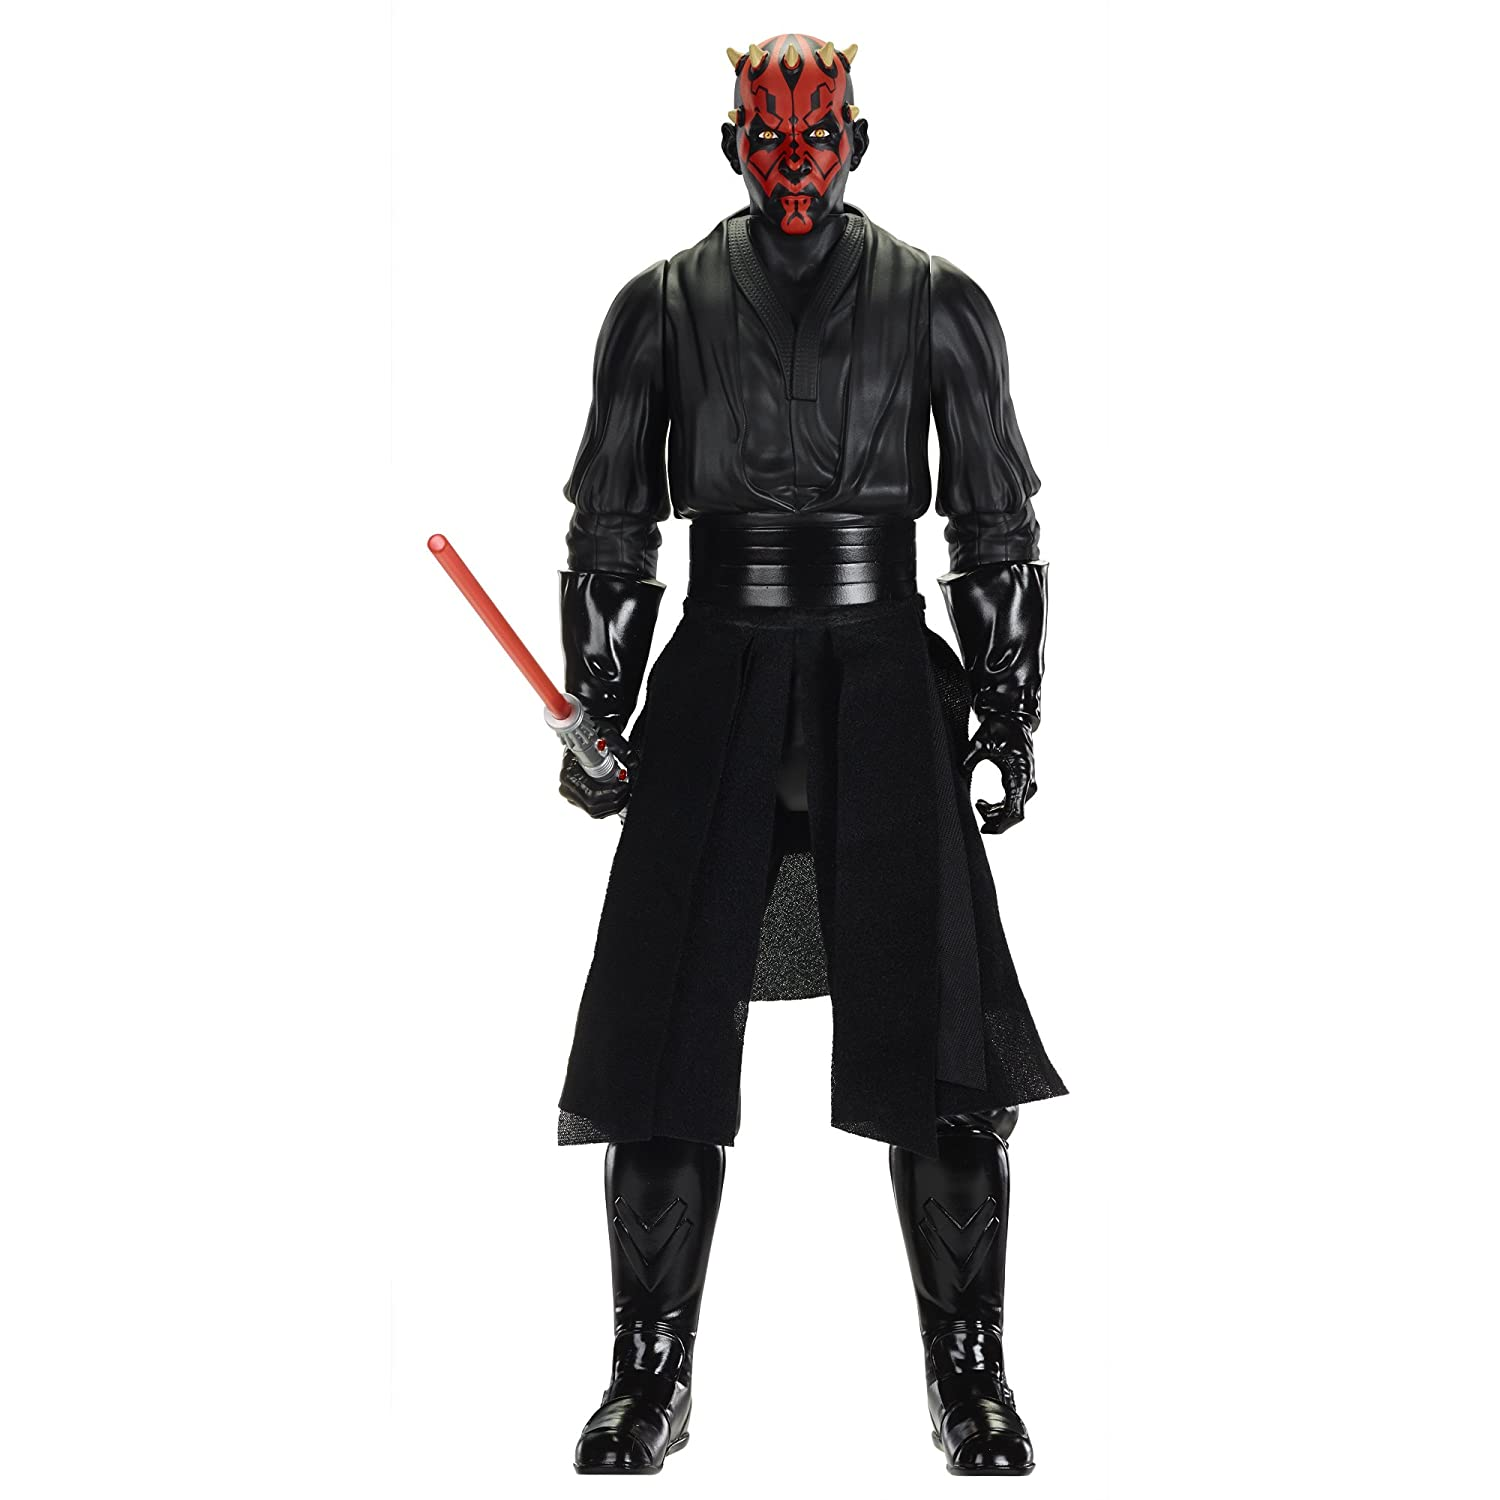 Jakks Pacific Star Wars Darth Maul Figurina, 50cm, 0039897794341